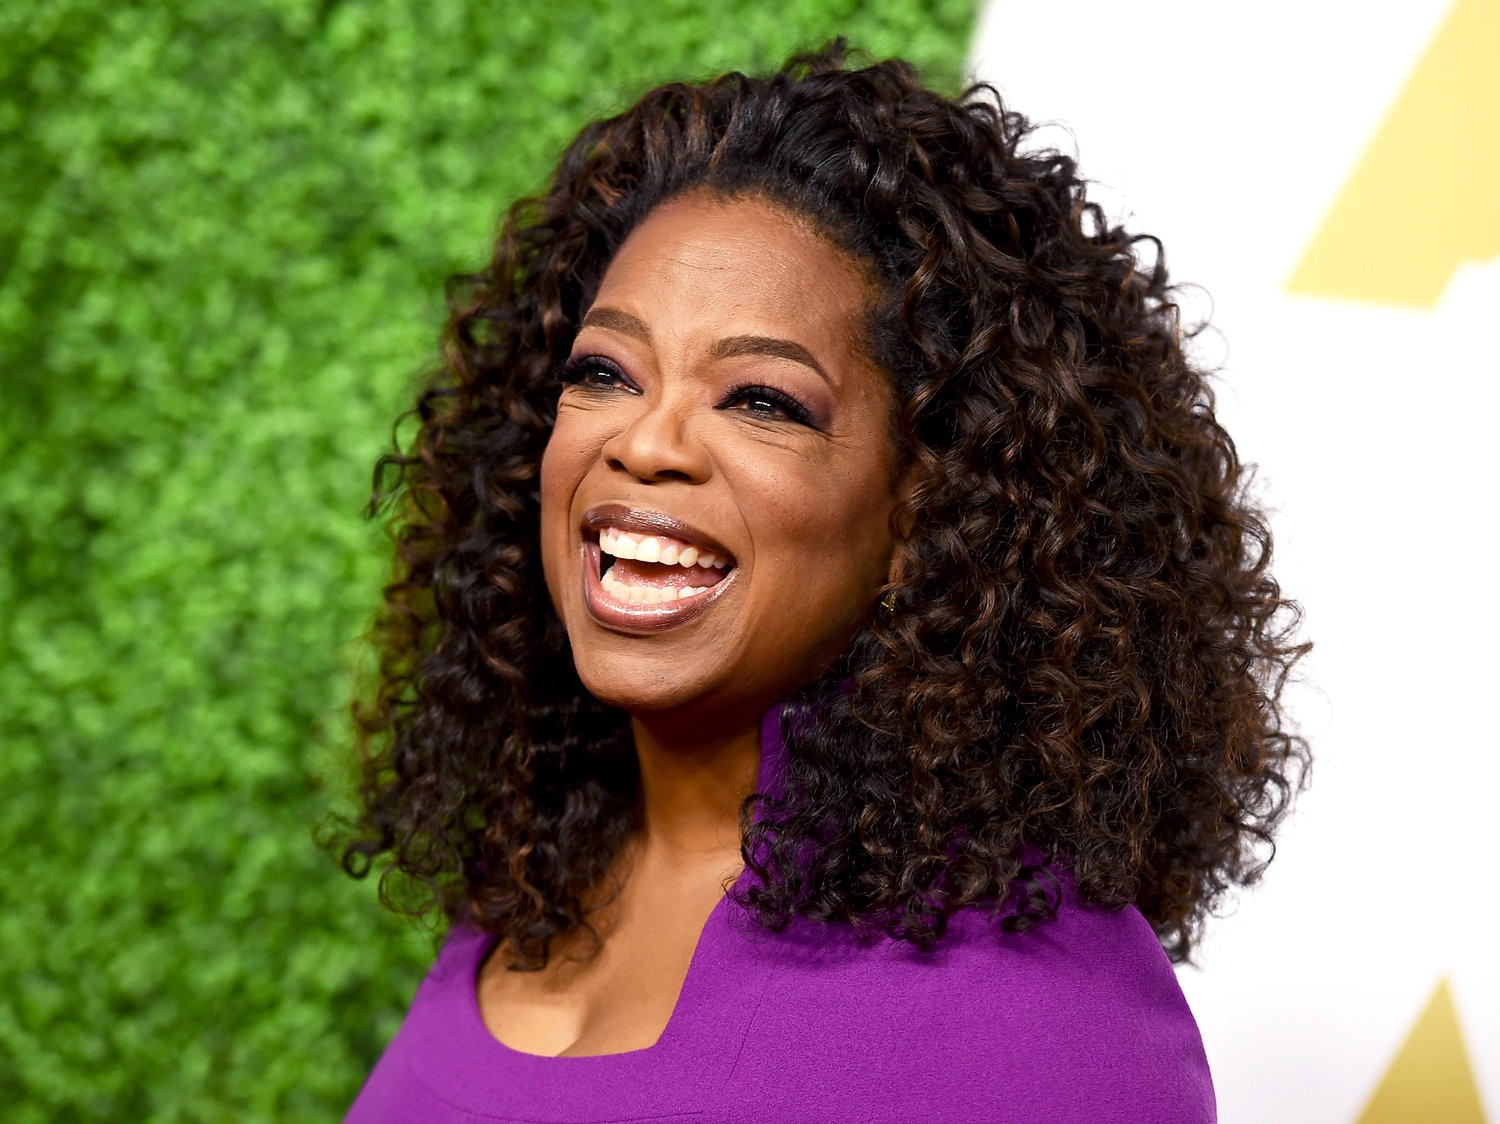 Oprah Always smiles